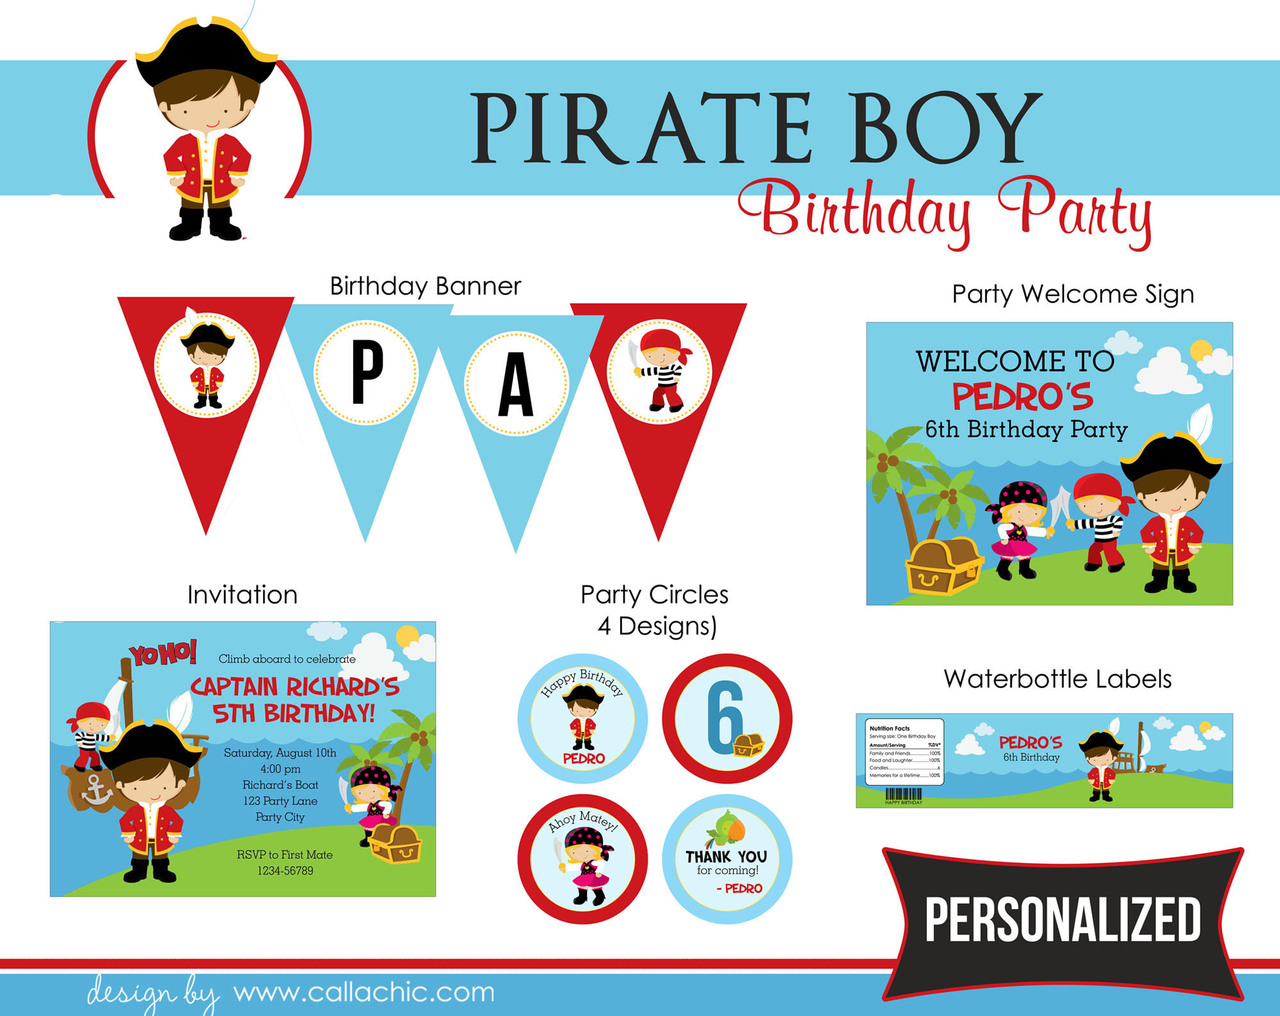 Personalized Party Package